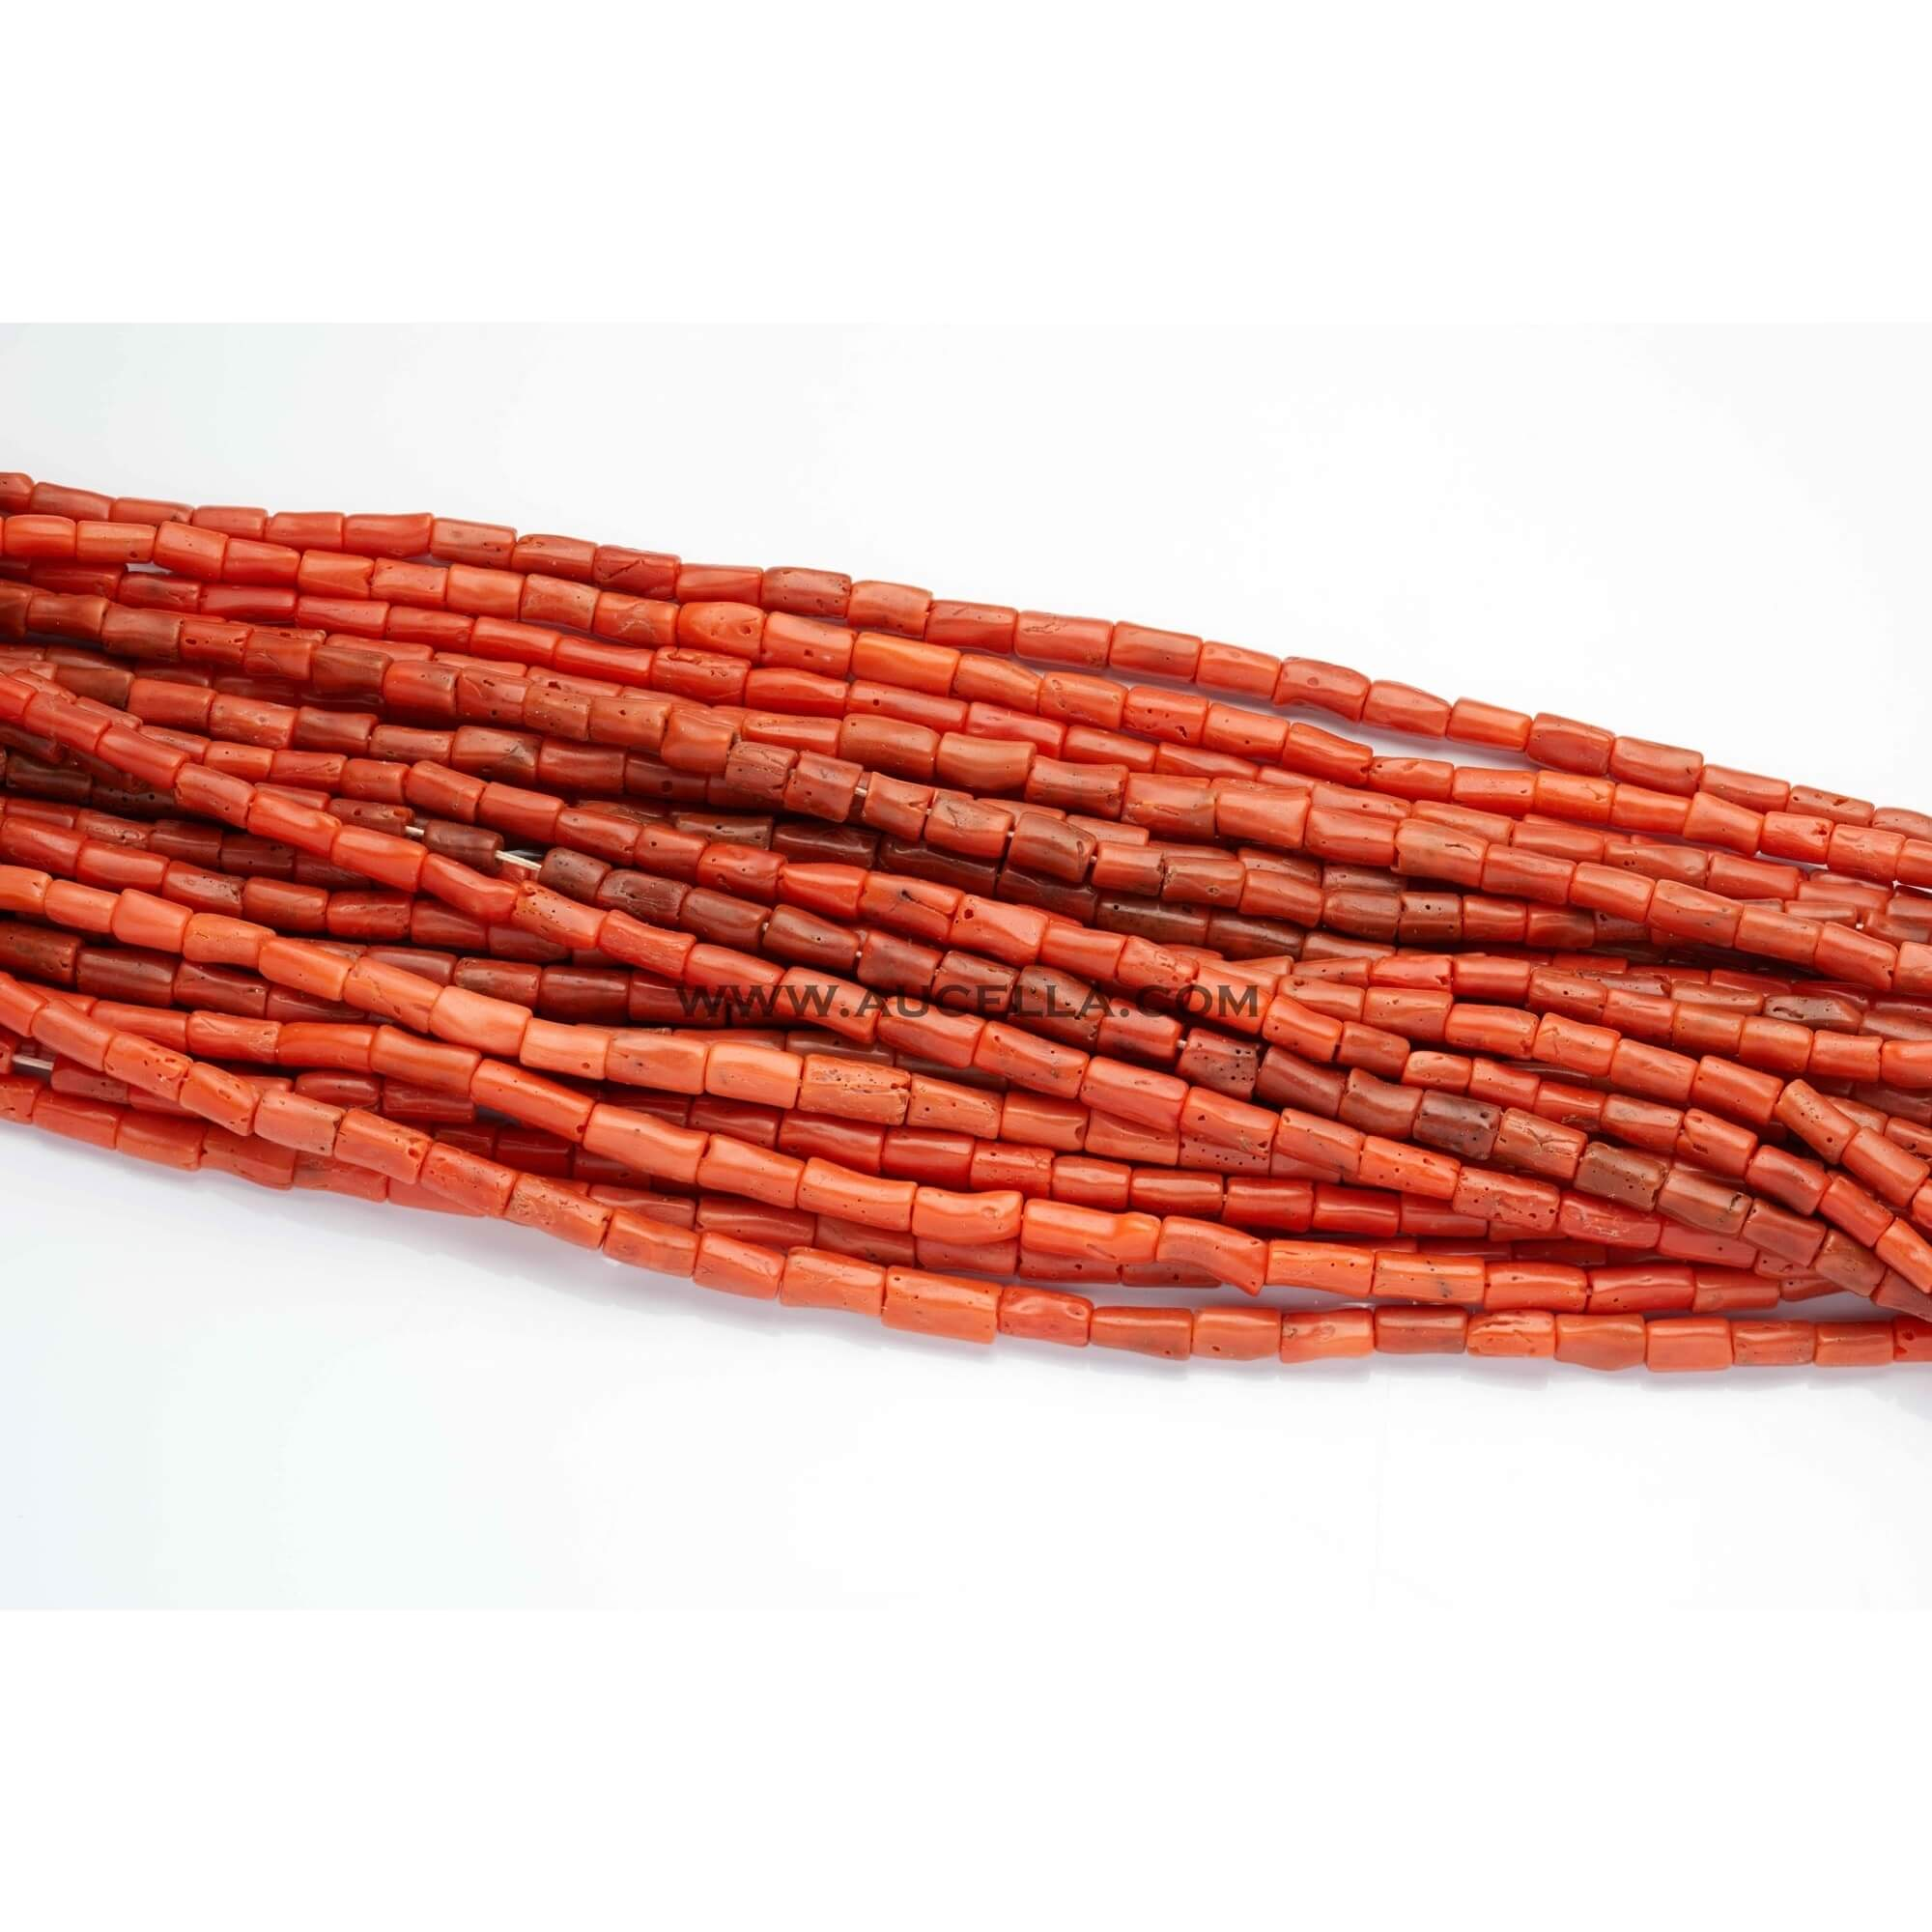 Natural red coral tube shape low quality